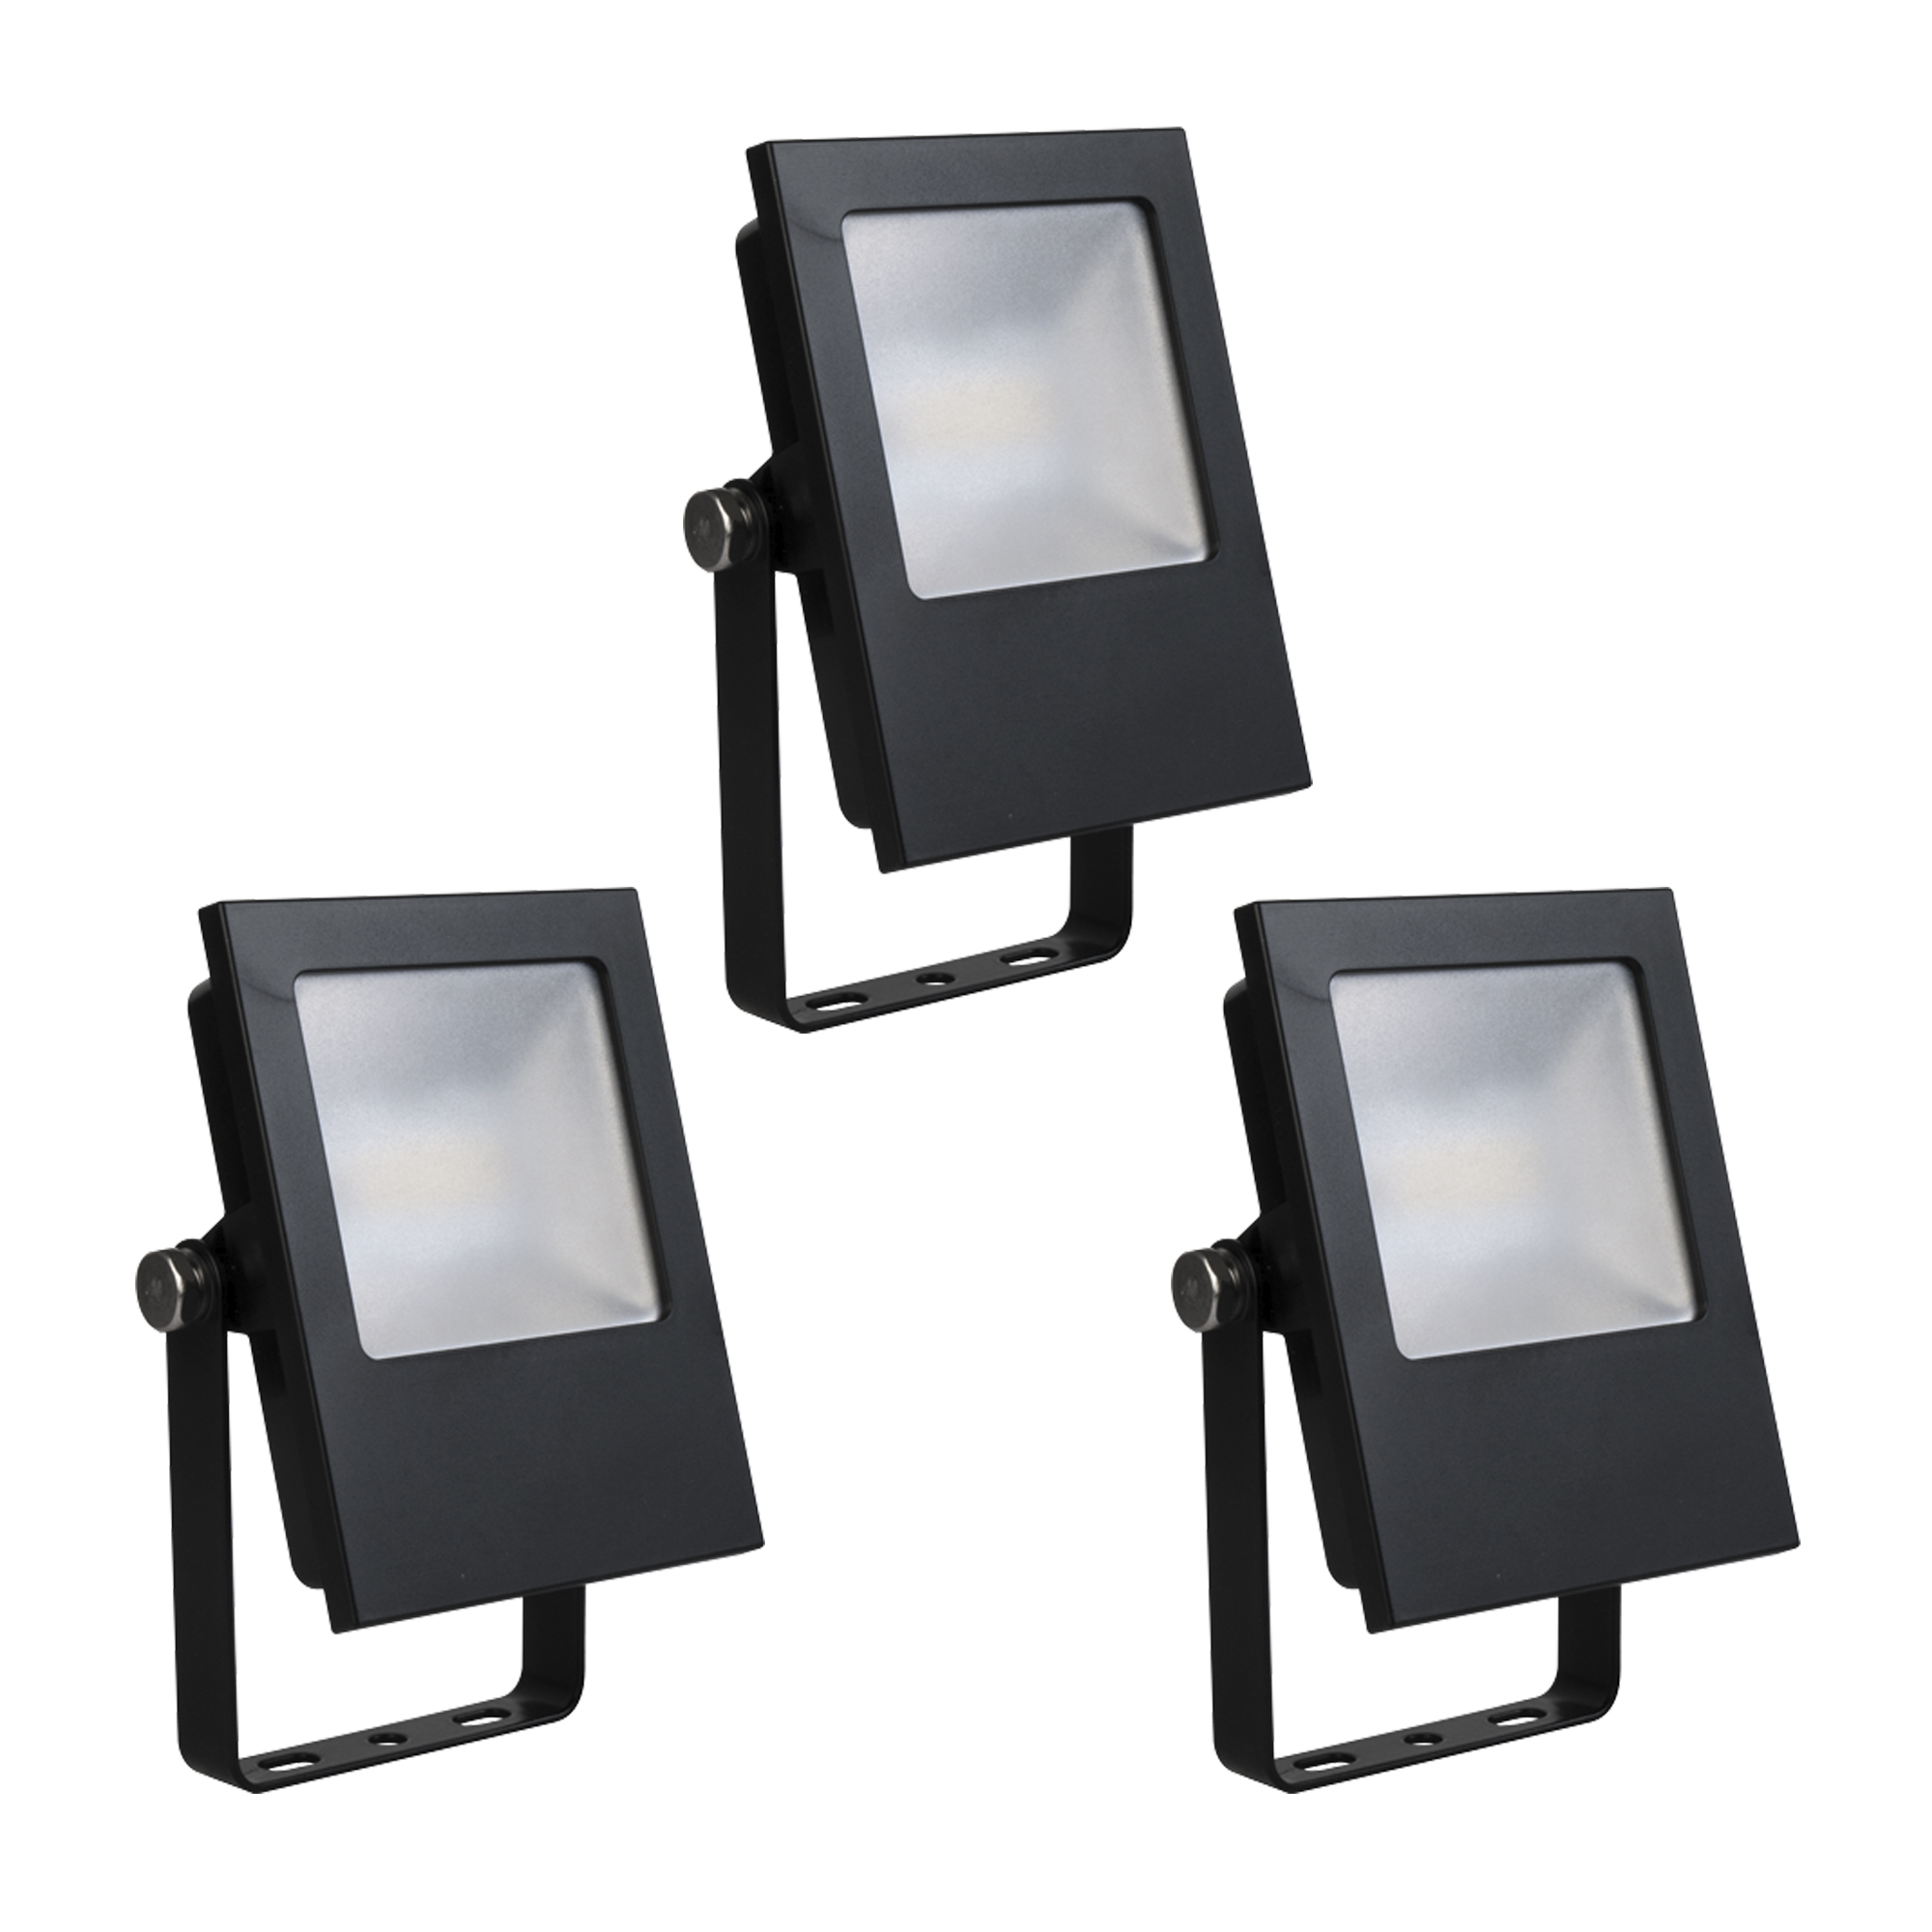 Set 3 stuks Led Floodlight Zwart